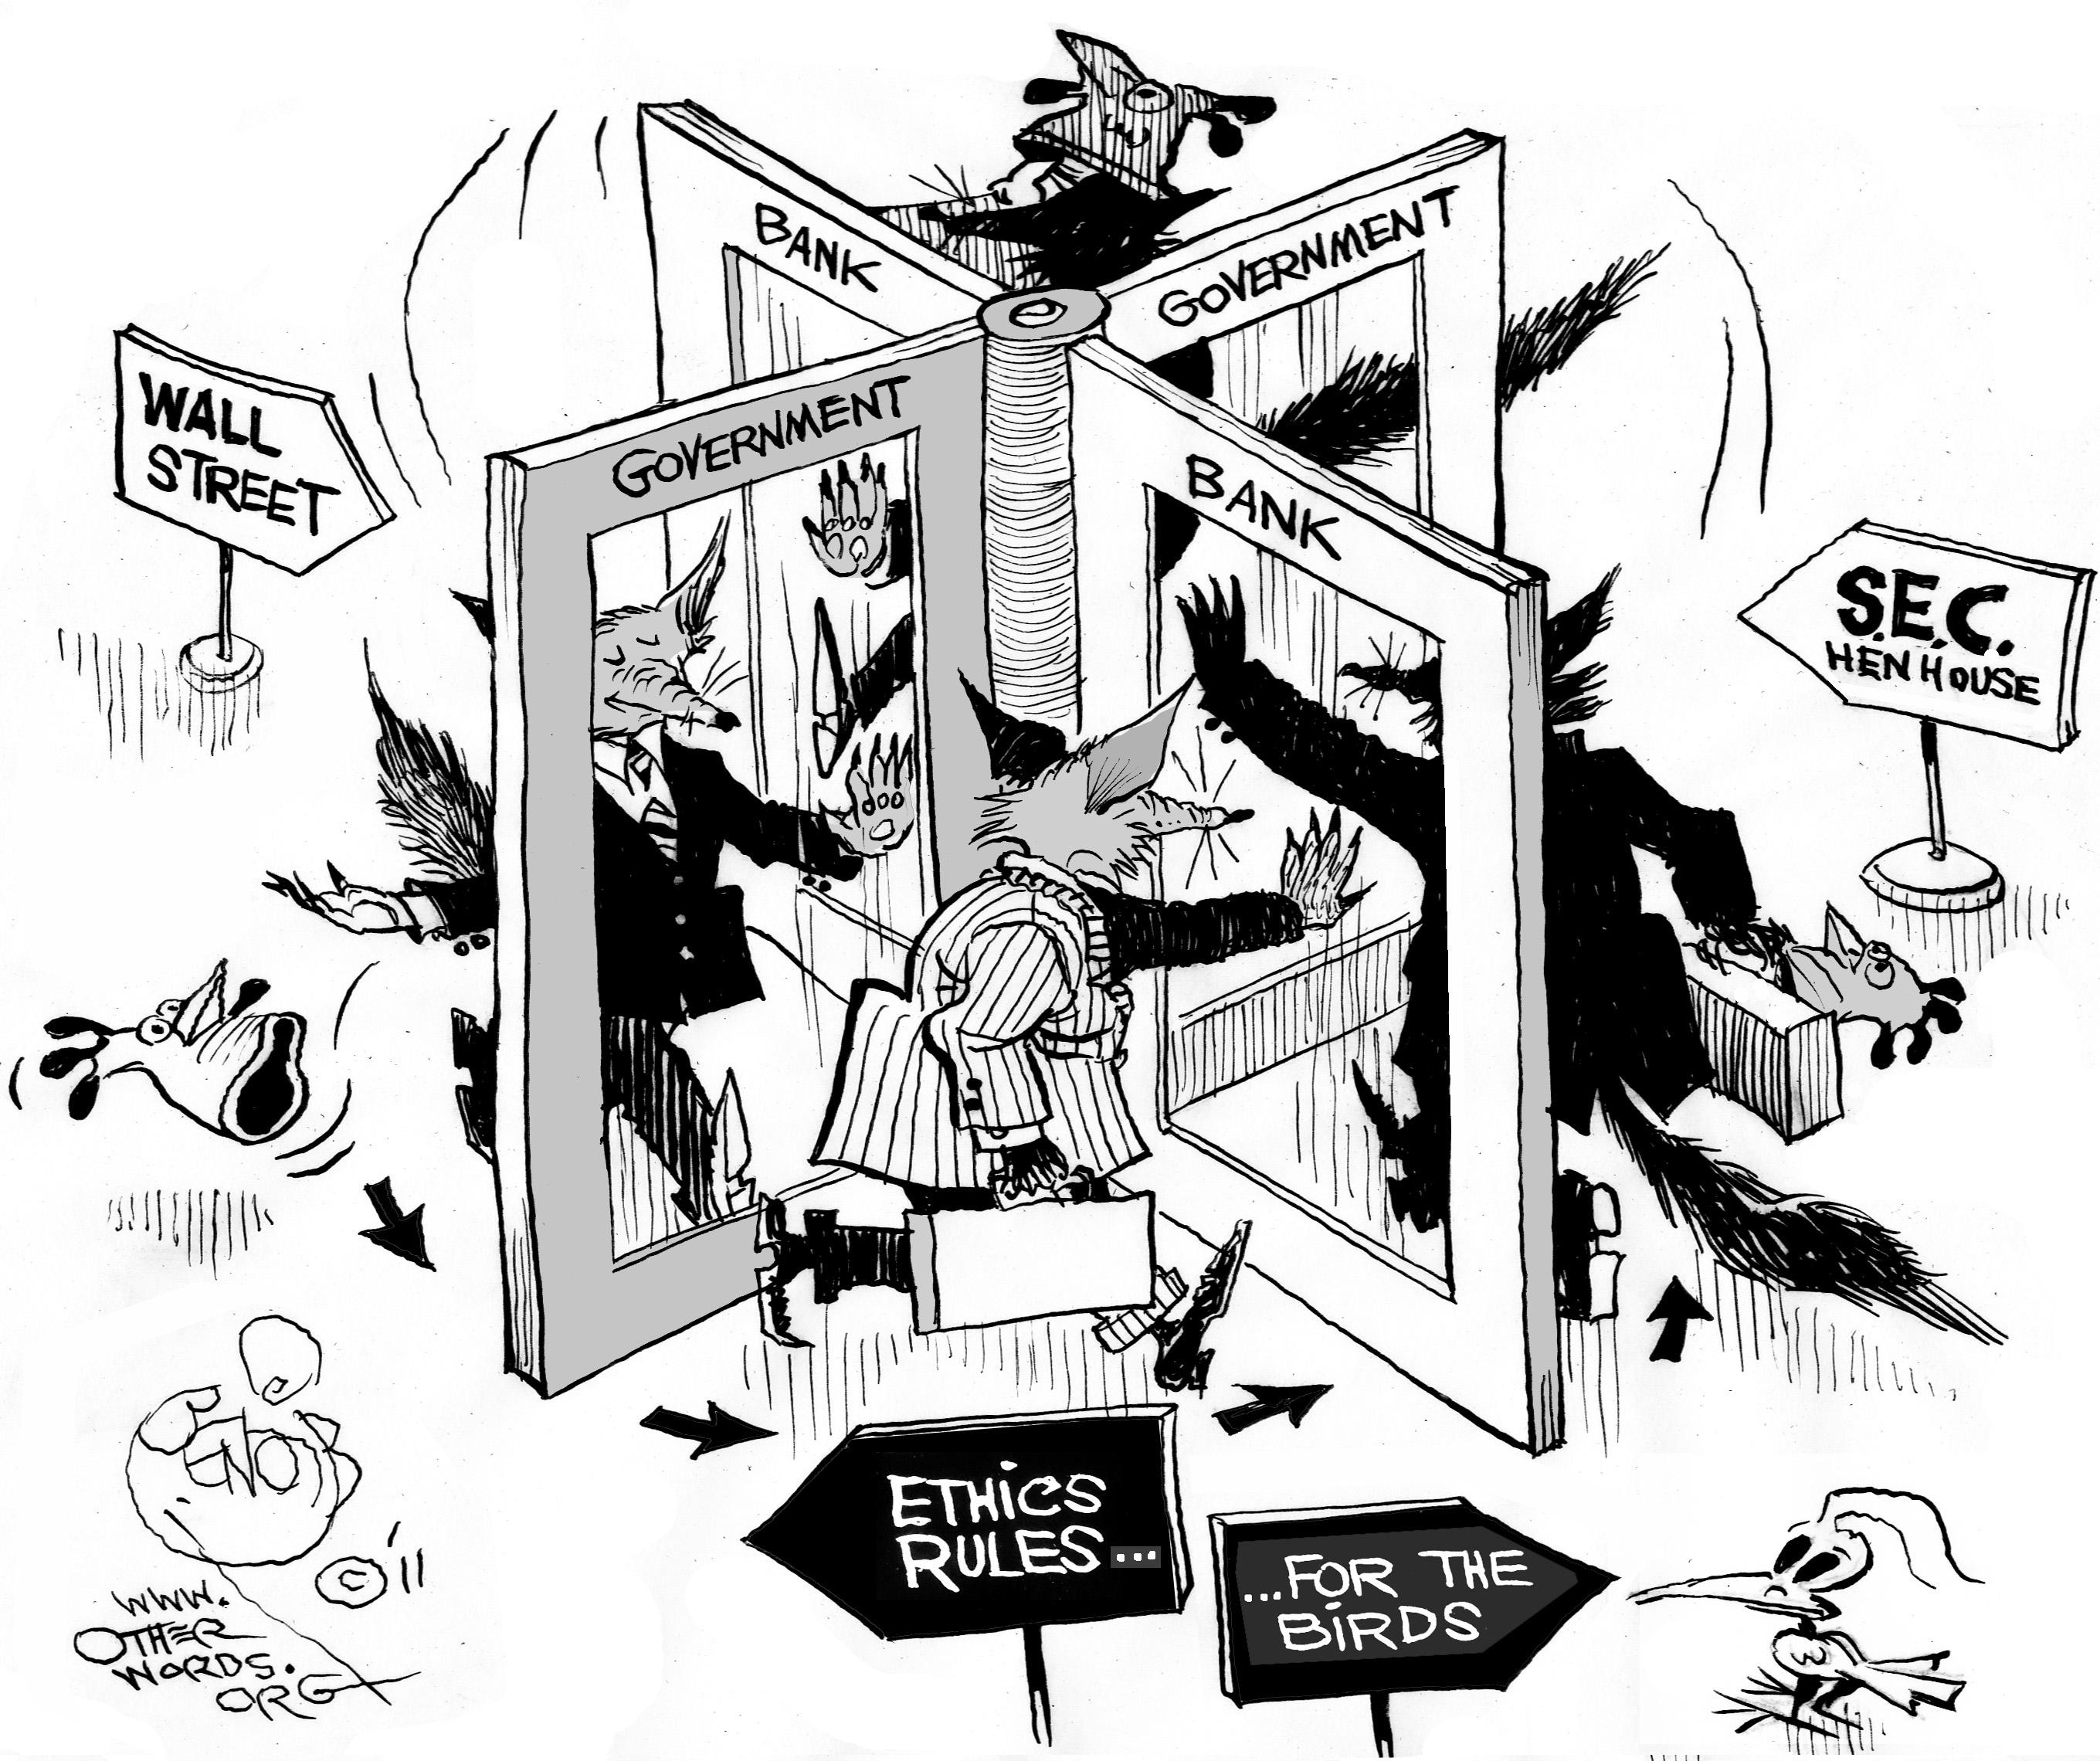 Sec-revolving-door-cartoon